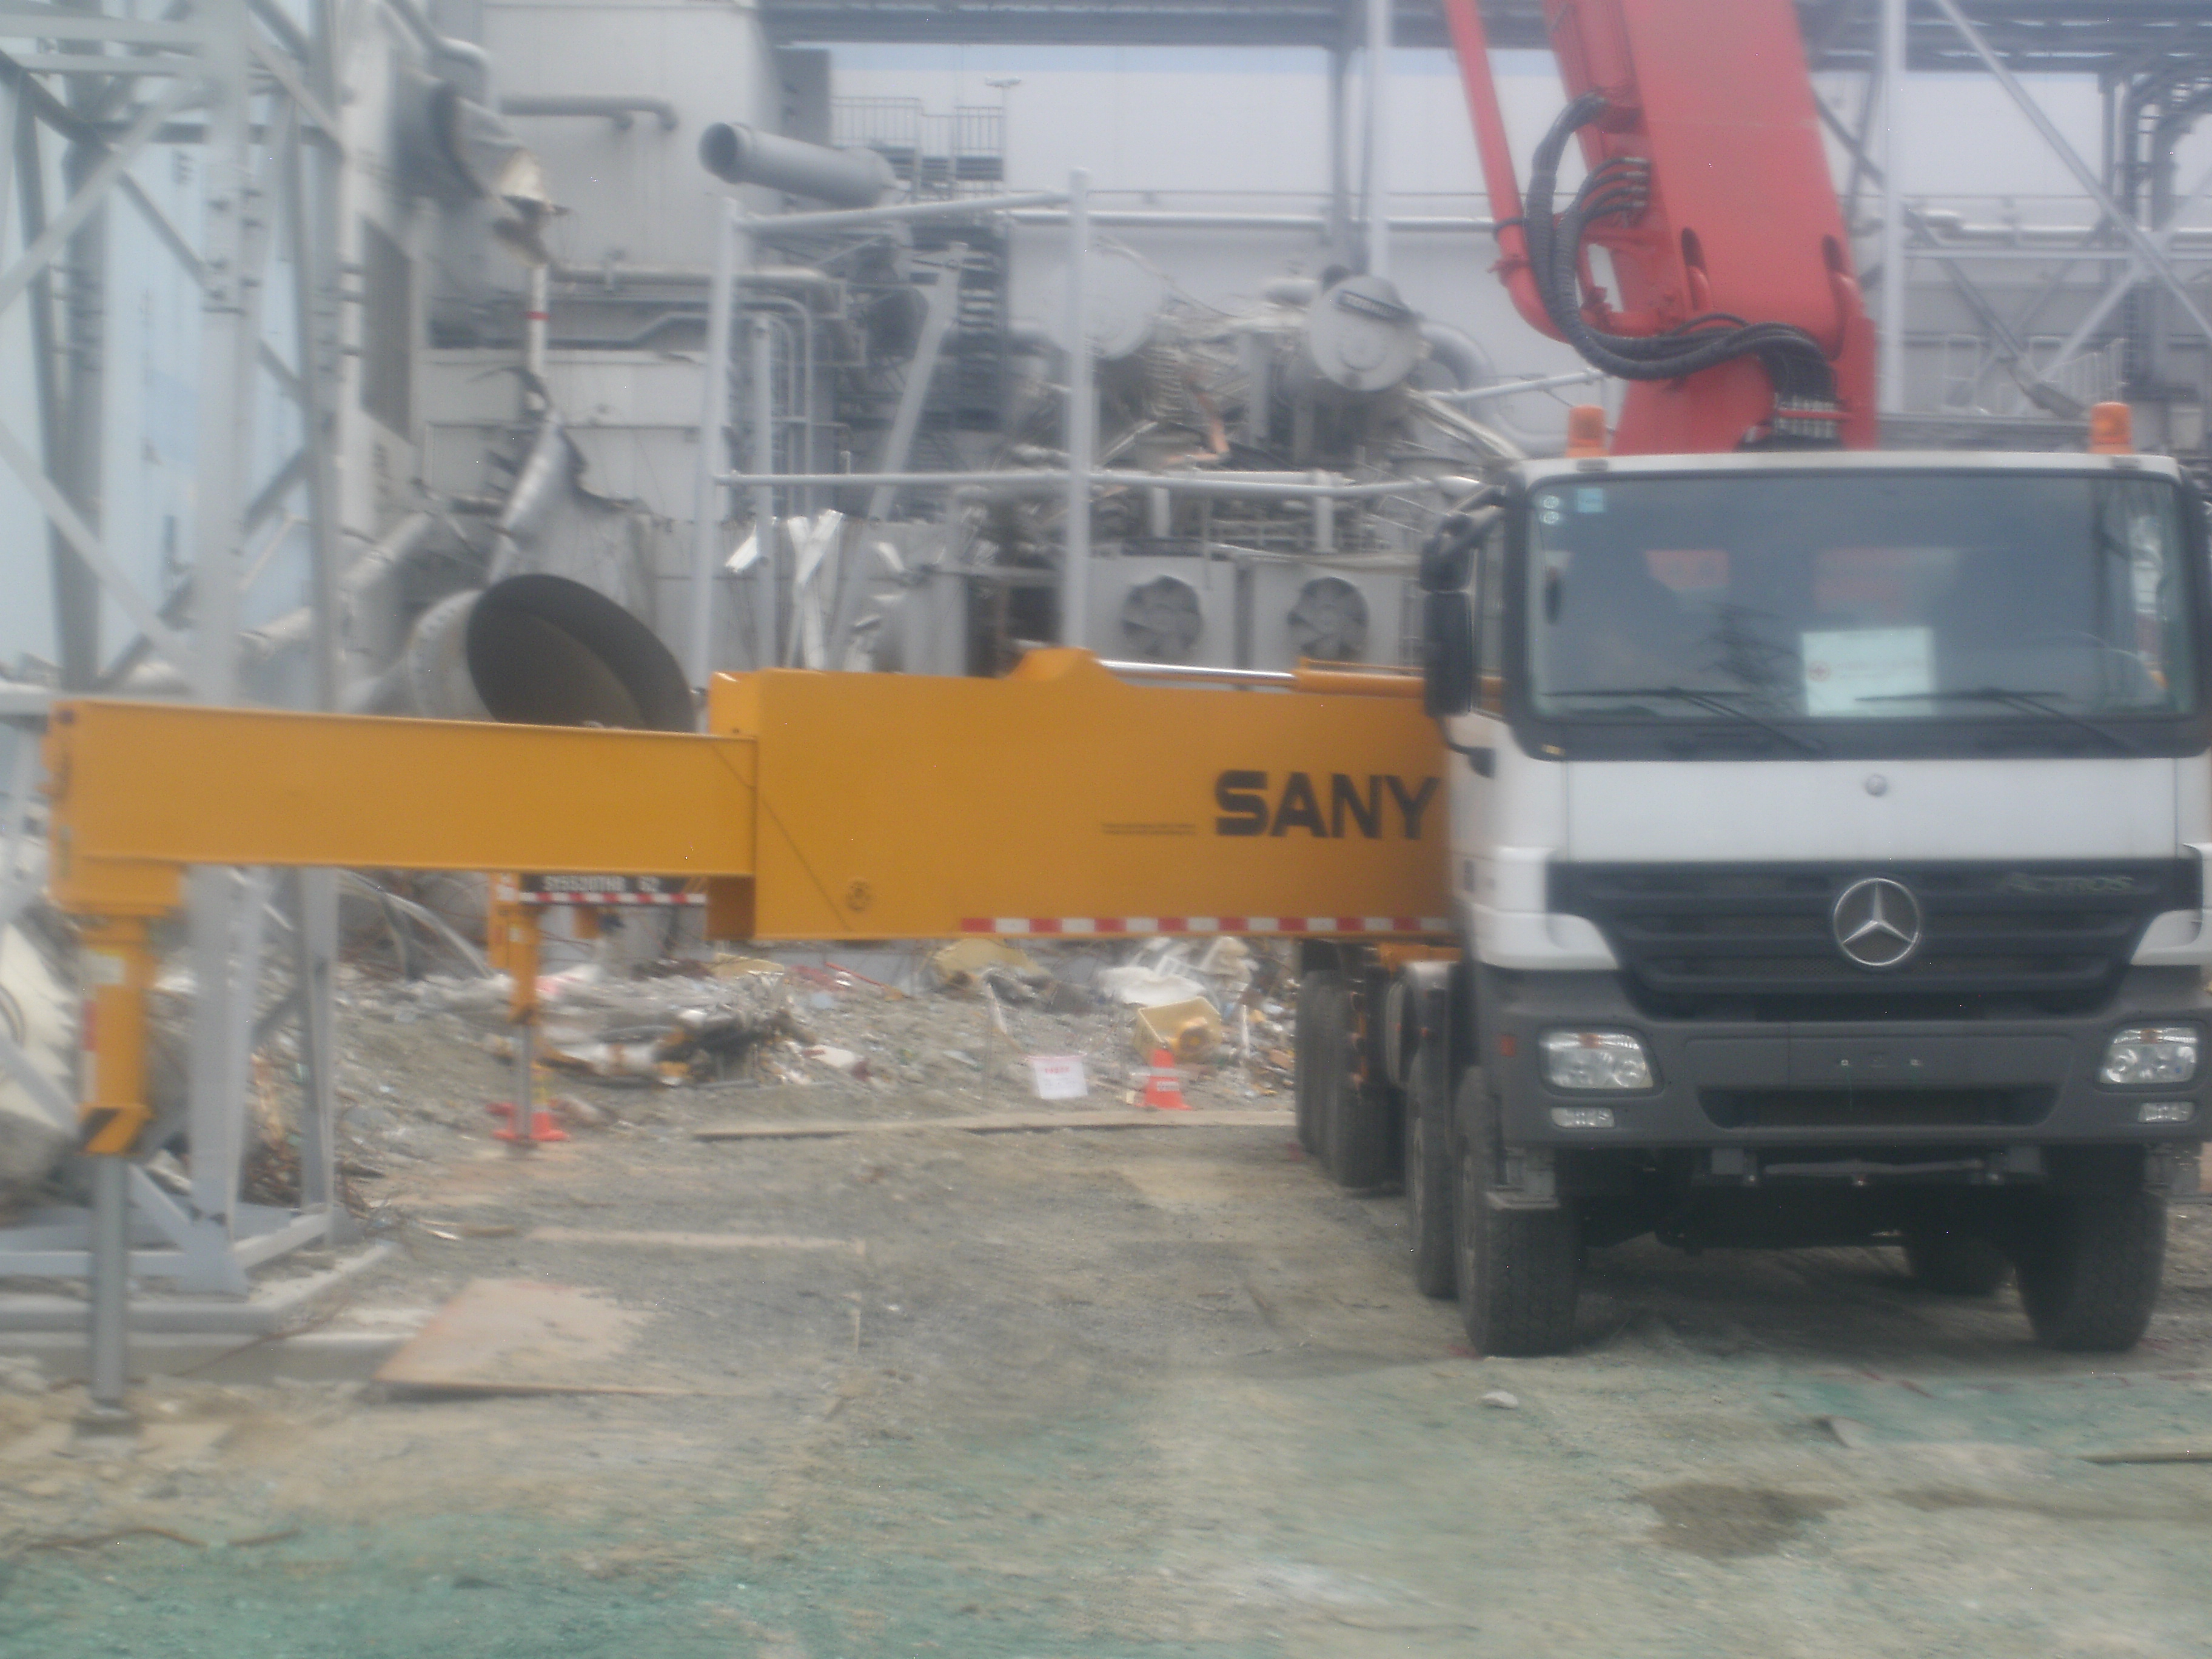 Fukushima Daiichi Nuclear Power Station Rubble around  the reactor building (2)